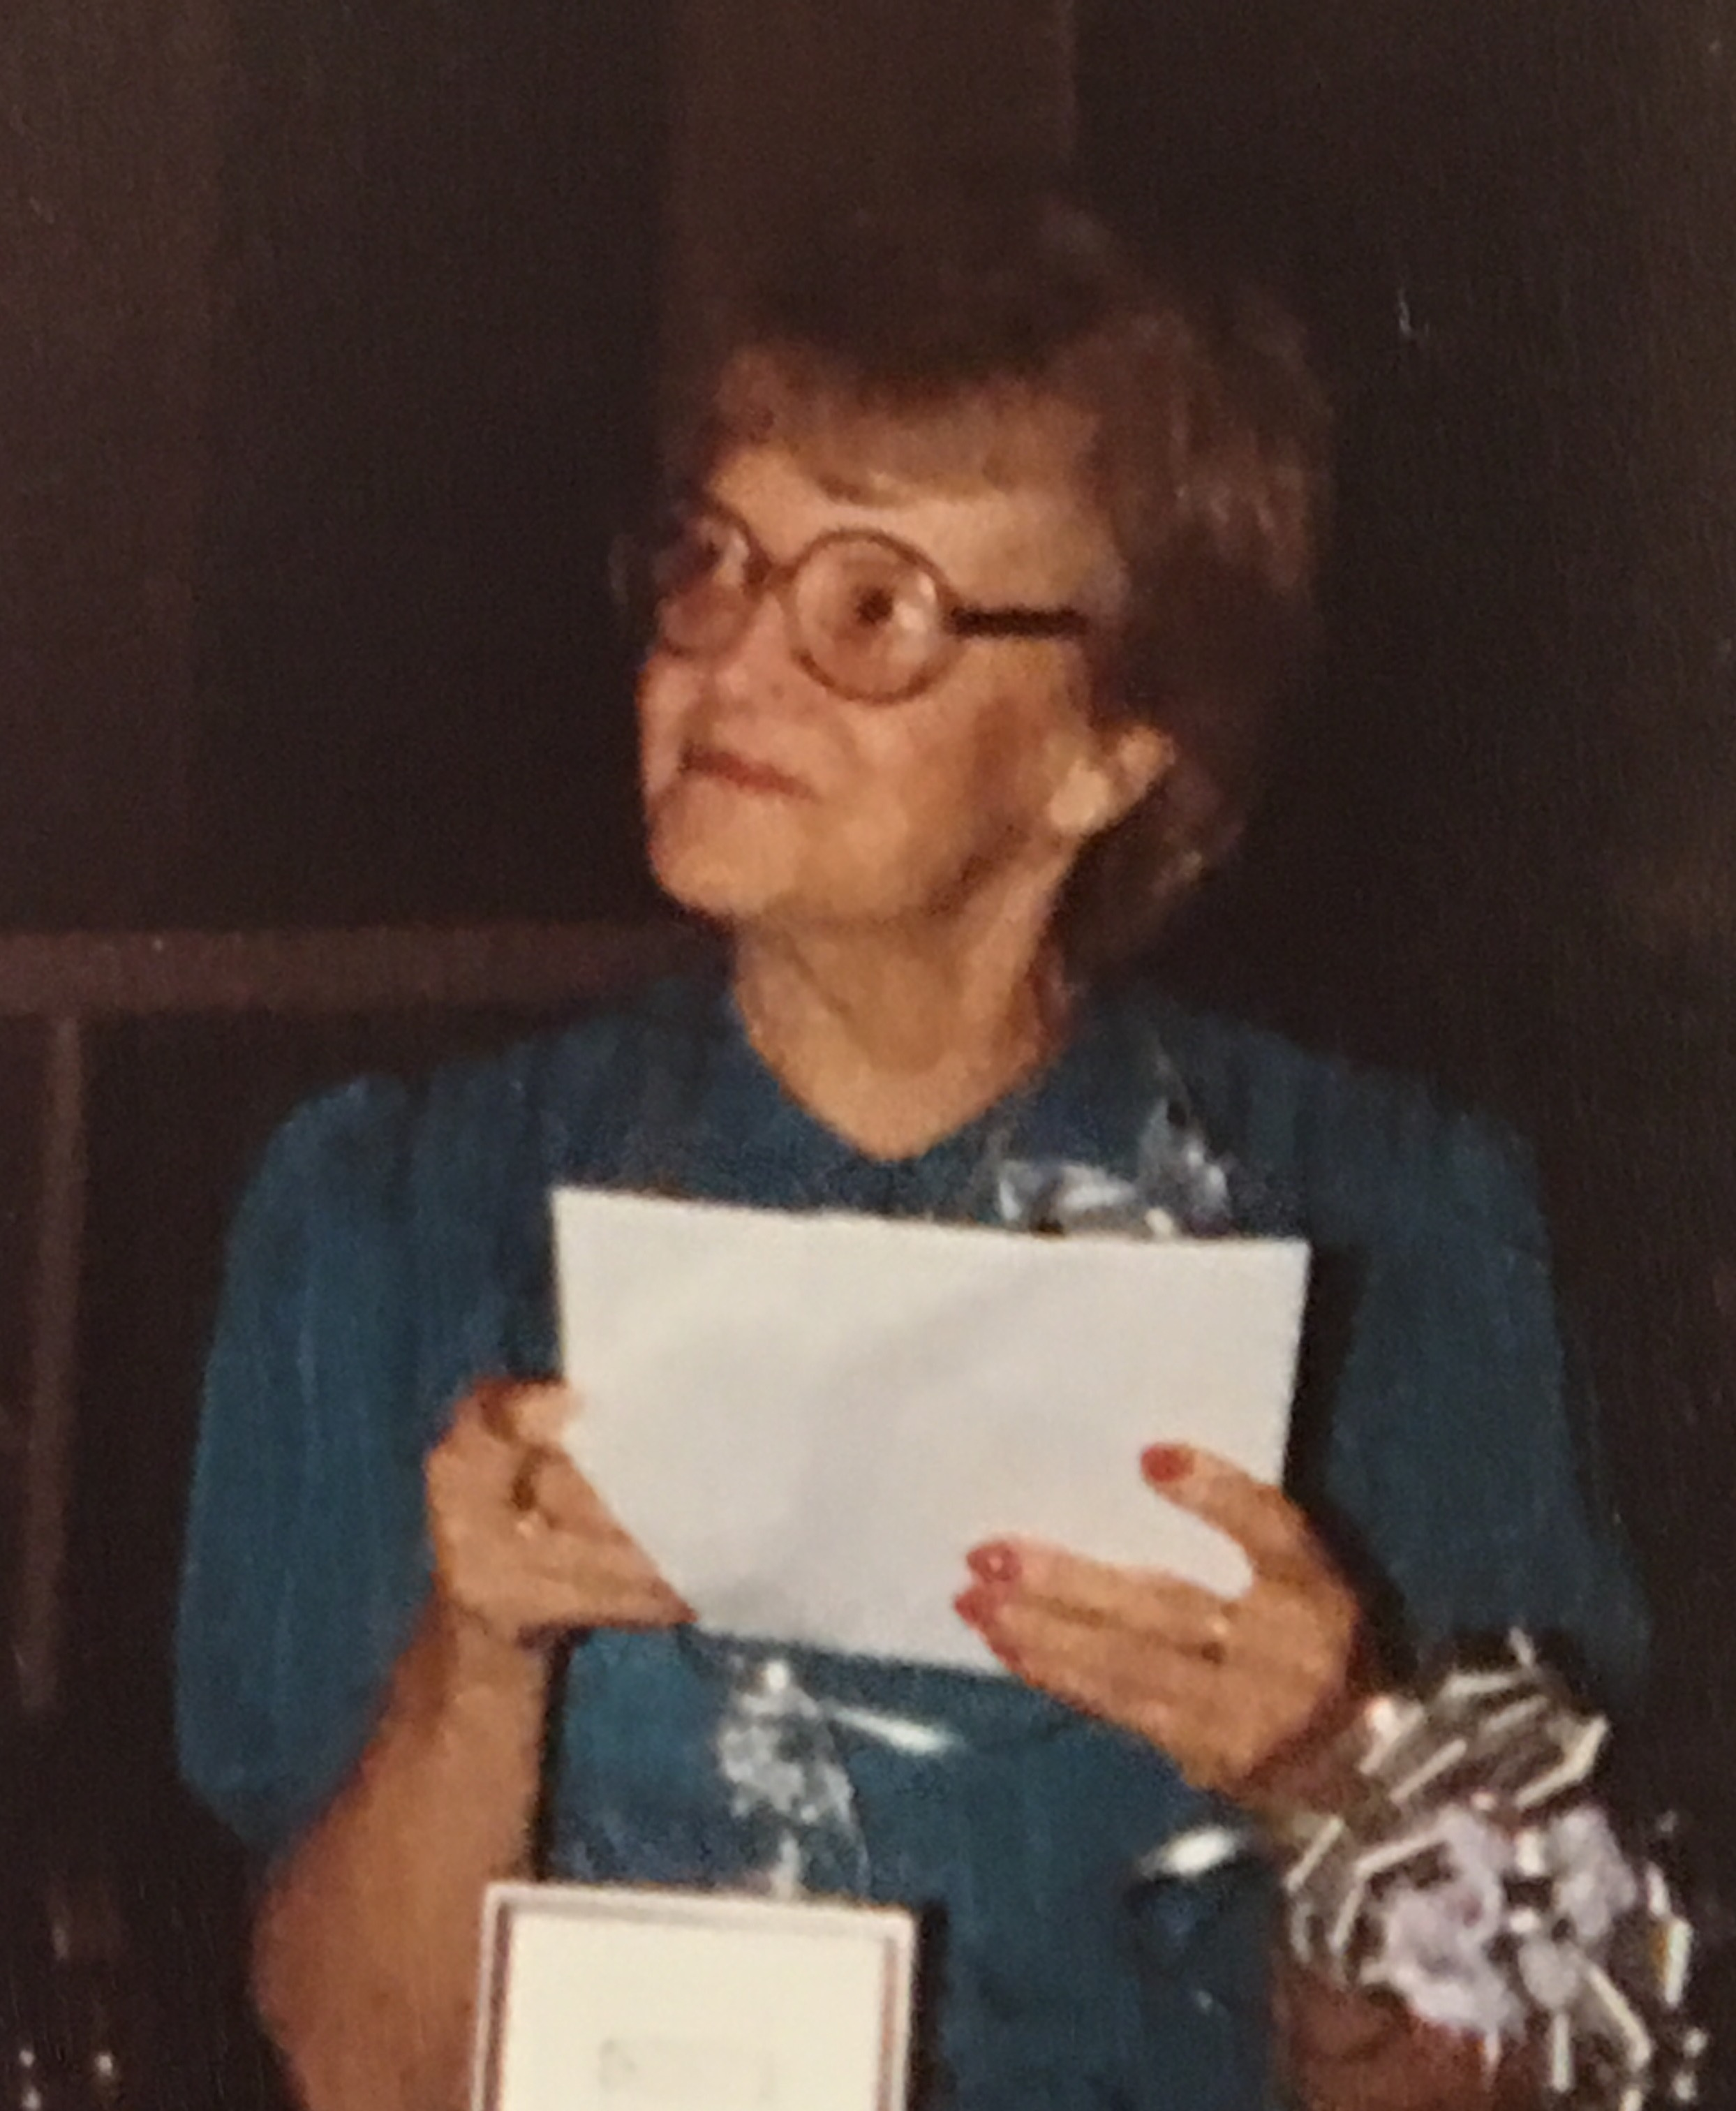 Sandy's mom at her retirement party in 1983